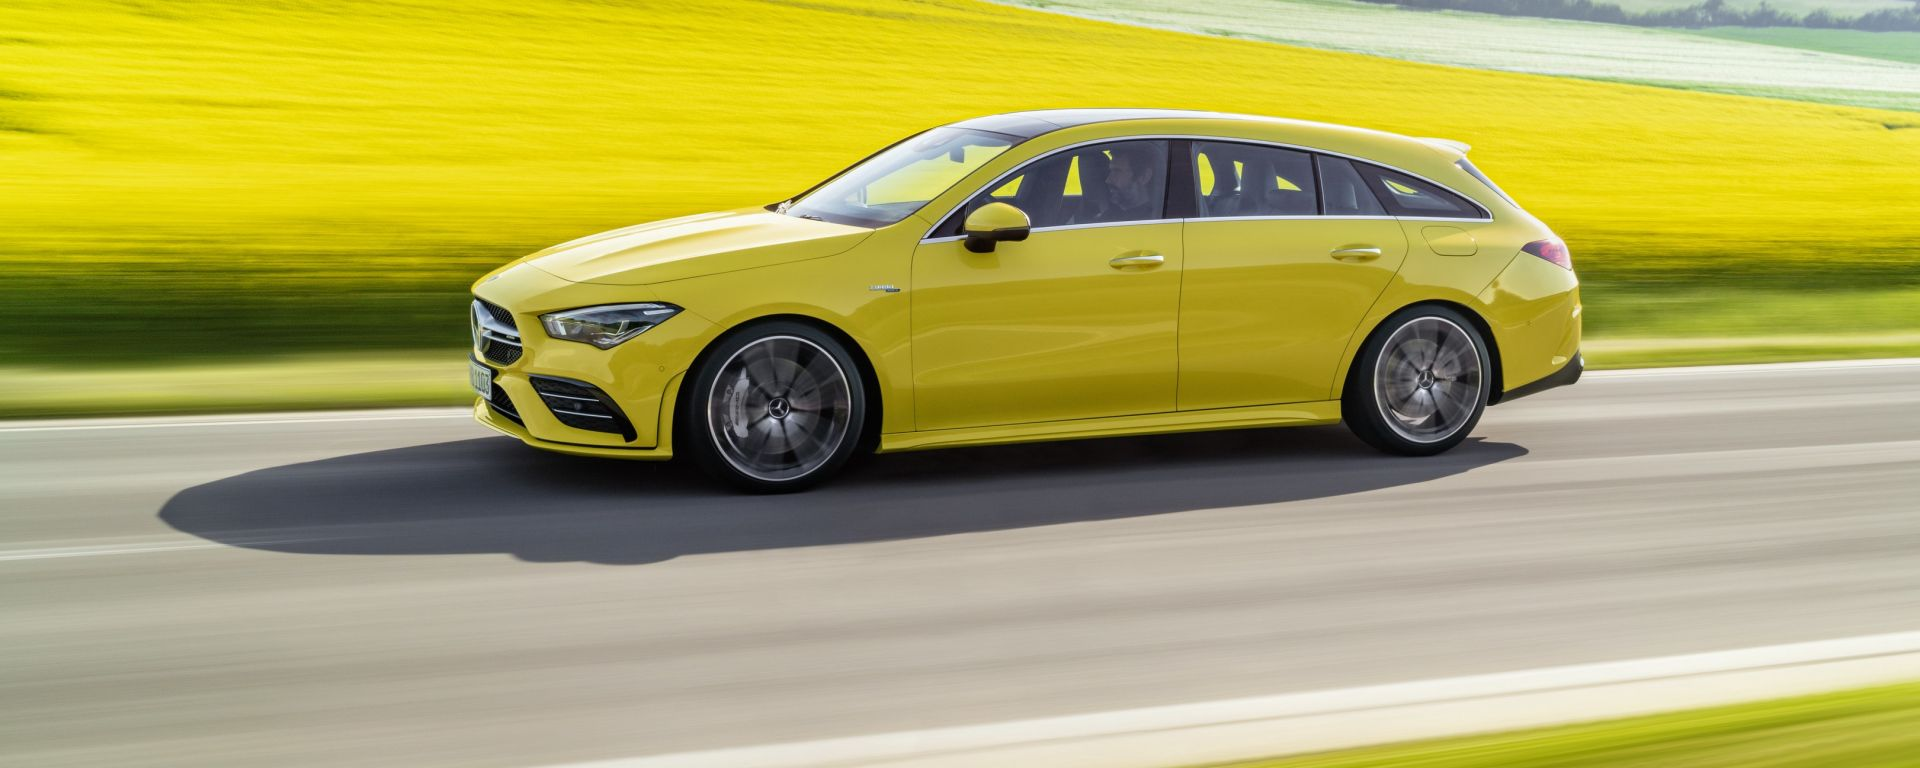 Mercedes CLA 35 AMG 4Matic Shooting Brake: vista laterale